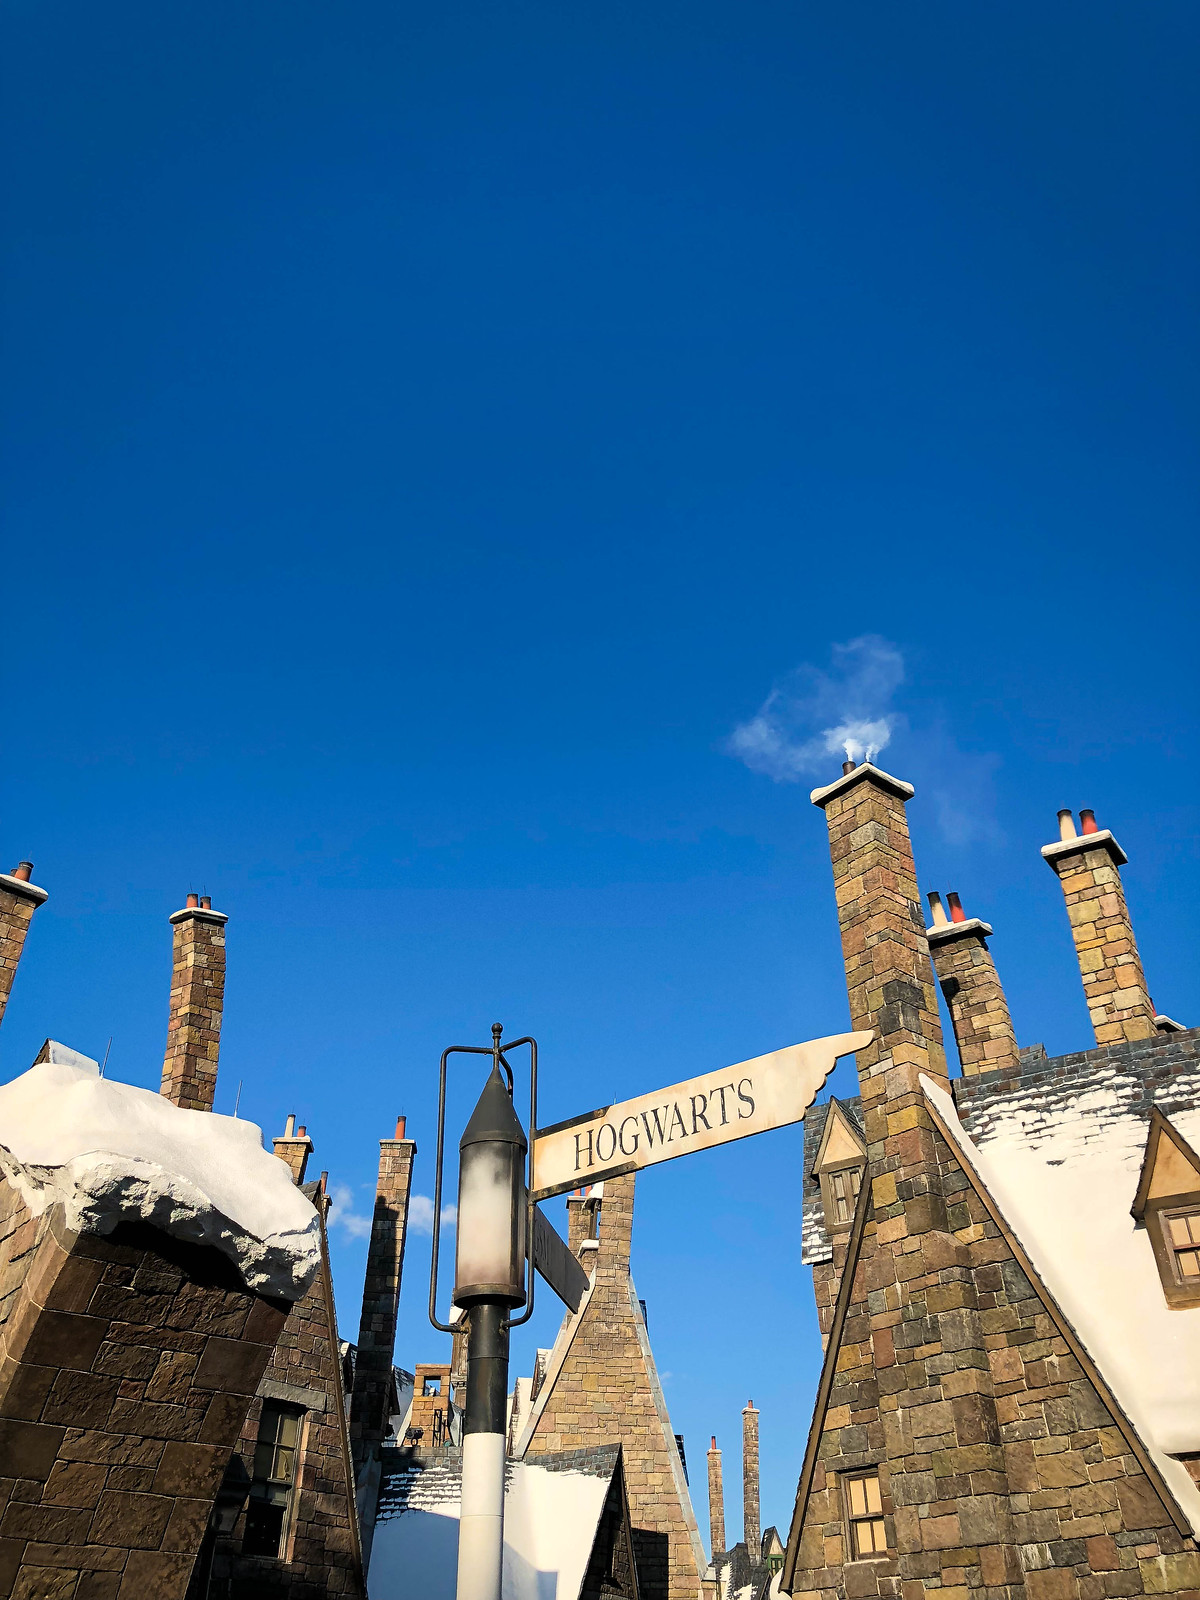 Hogwarts Wizarding World of Harry Potter Universal Studios Island of Adventure Orlando Florida